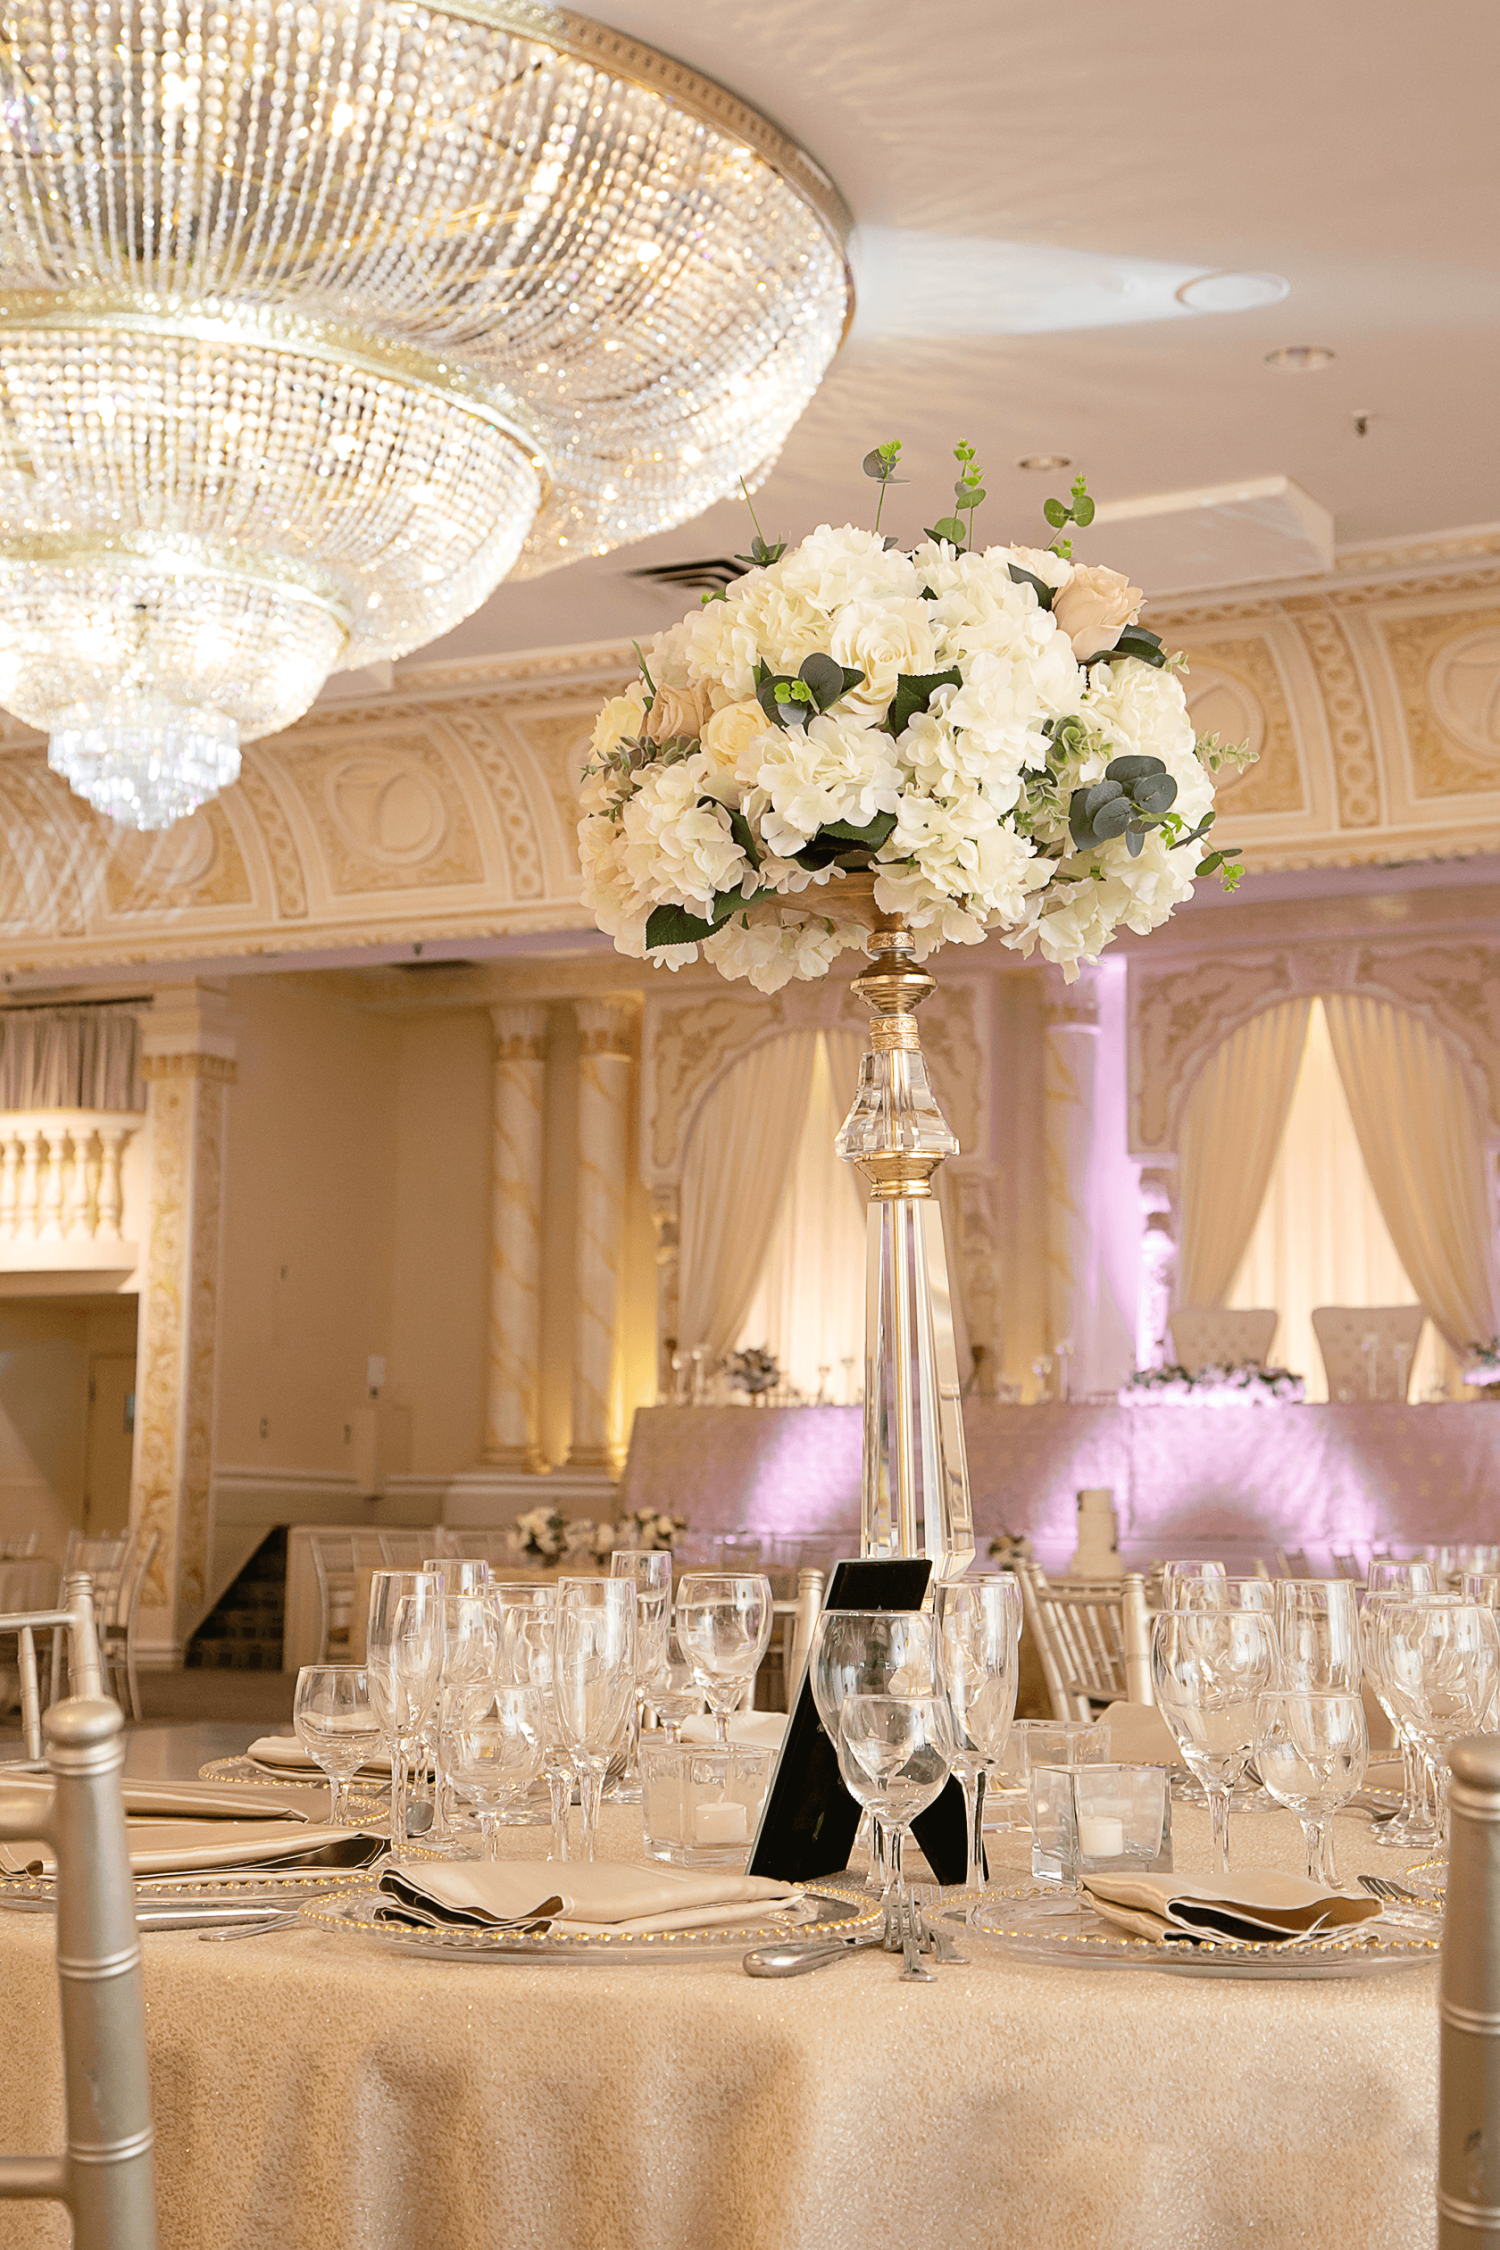 A bouquet of flowers in a vase atop a table at a wedding with a huge chandelier at the Grand Queens Wedding Venue at Paradise Banquet Halls.